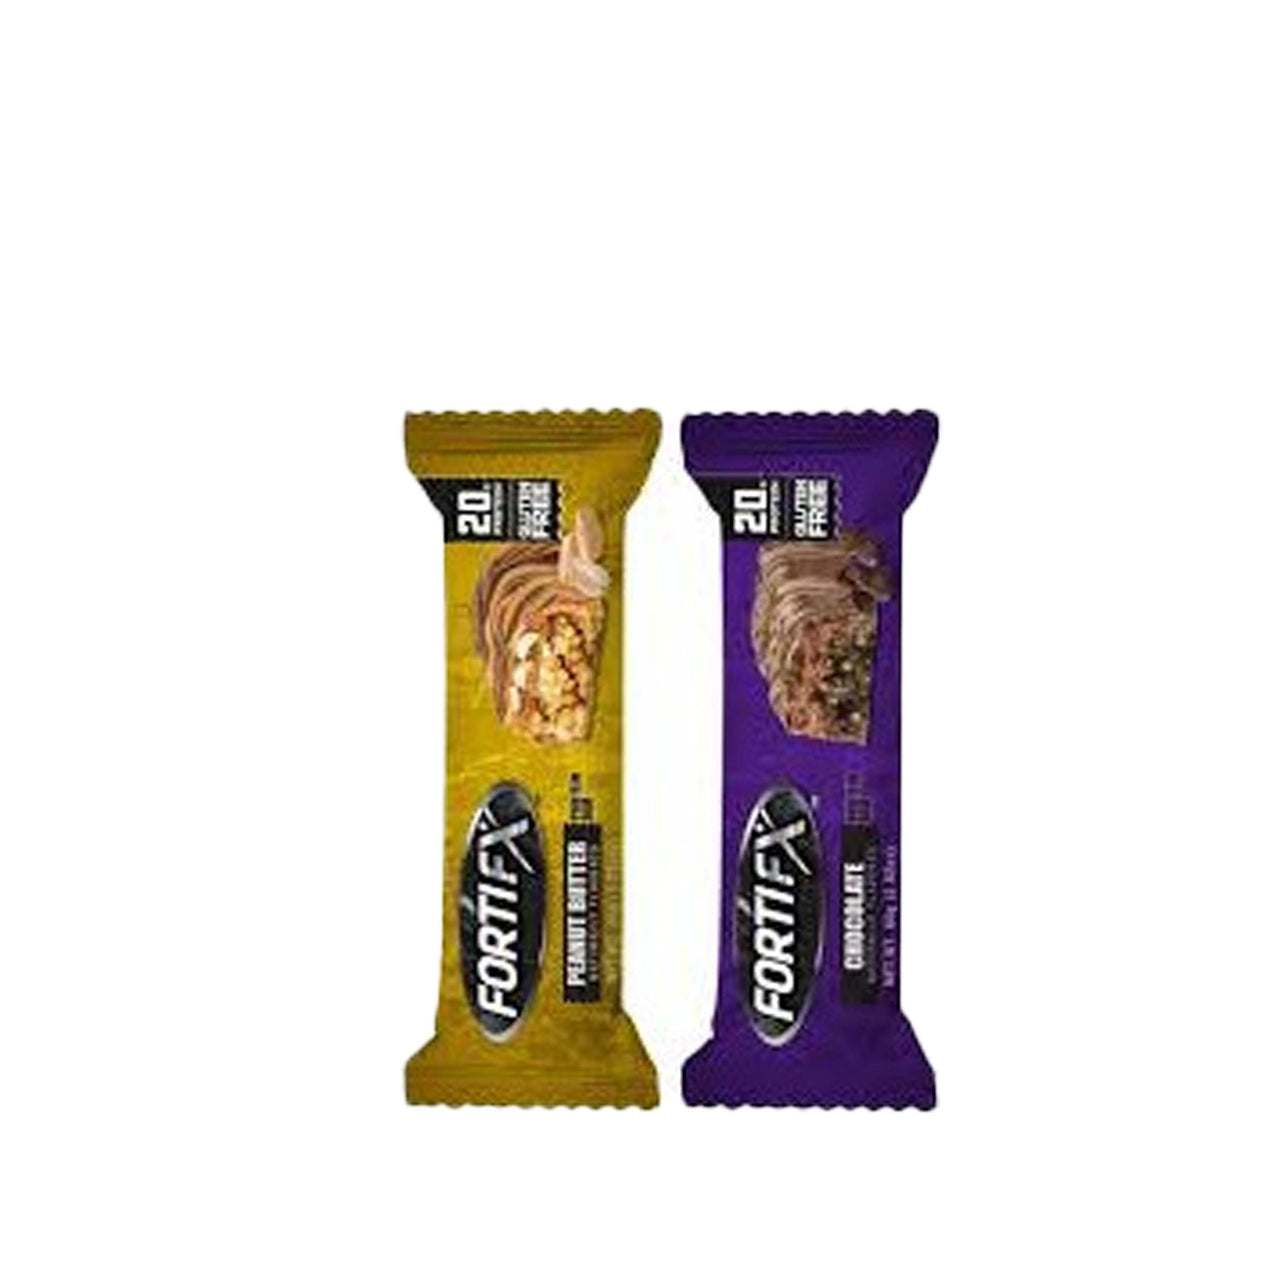 FortiFX Protein bar, FortiFX - Nutrition Co Australia